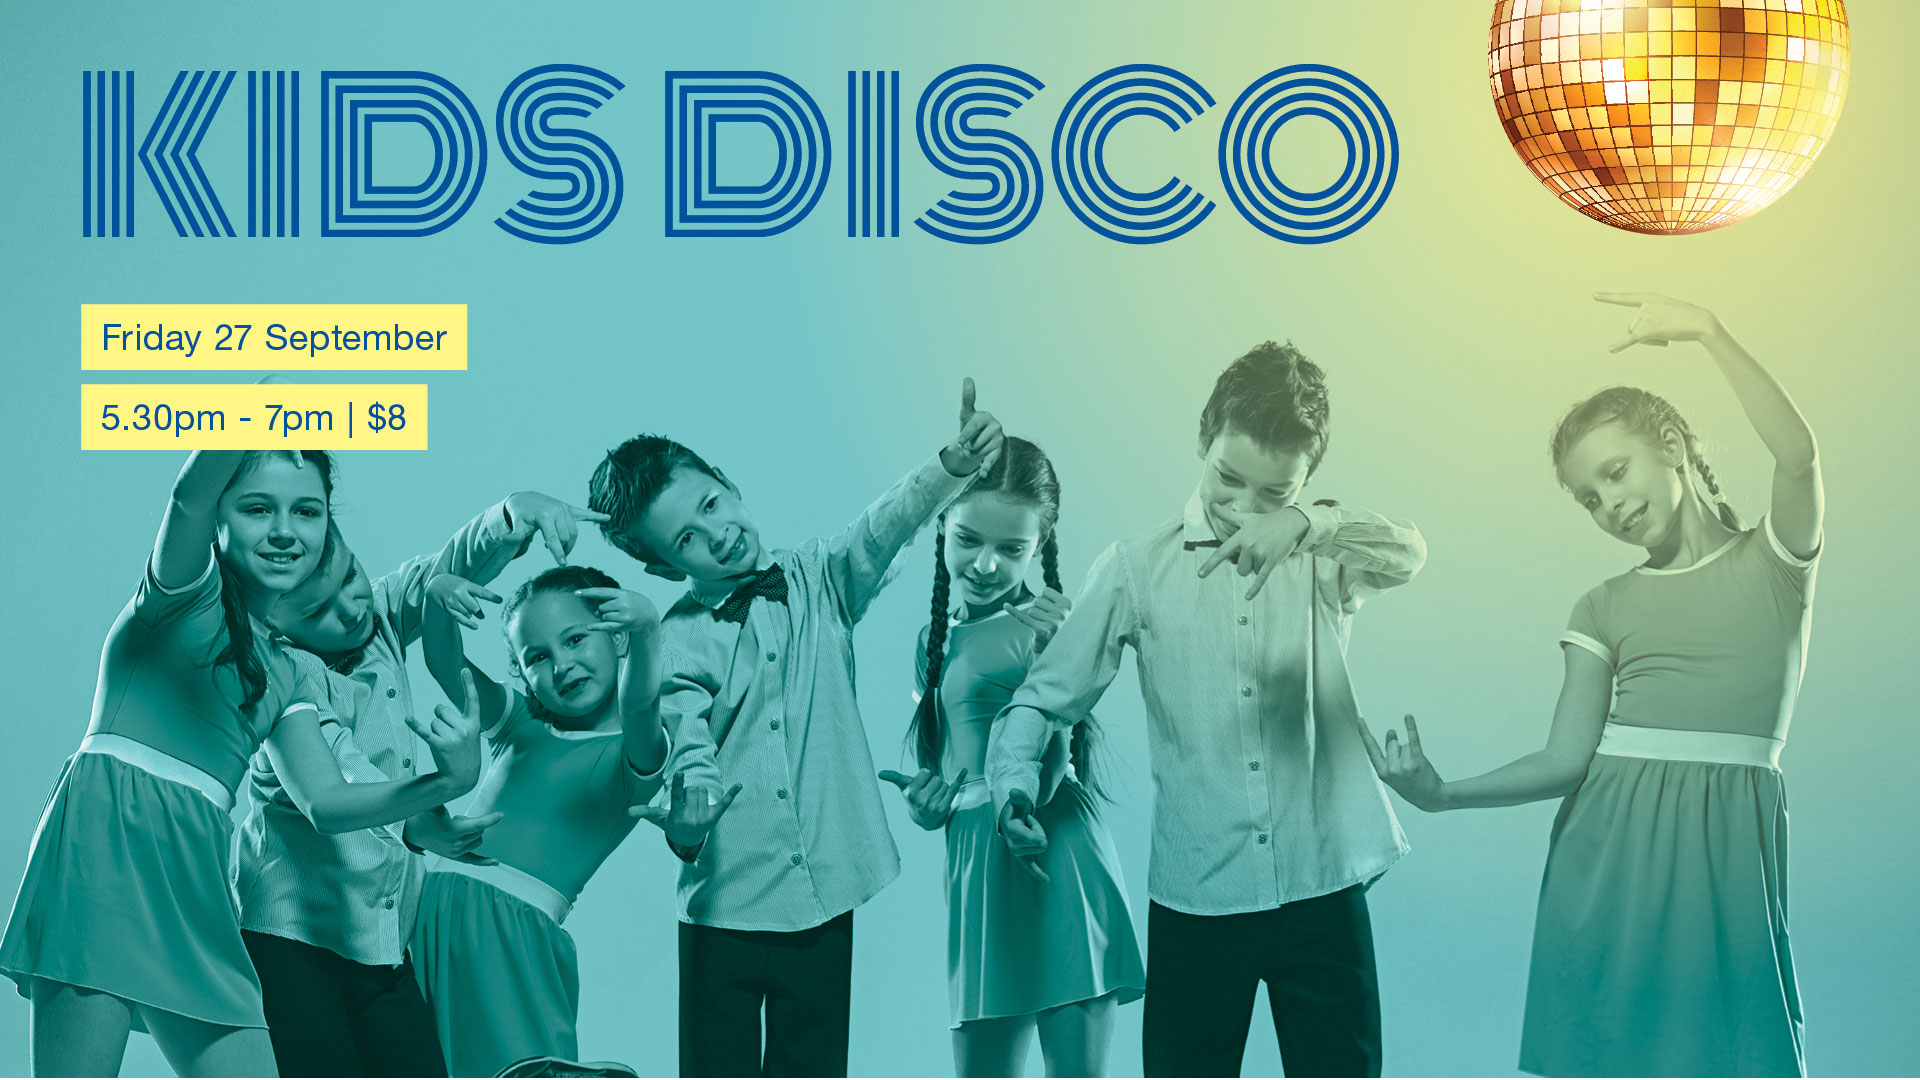 HD-SeptOct-1920x1080-KidsDisco.jpg